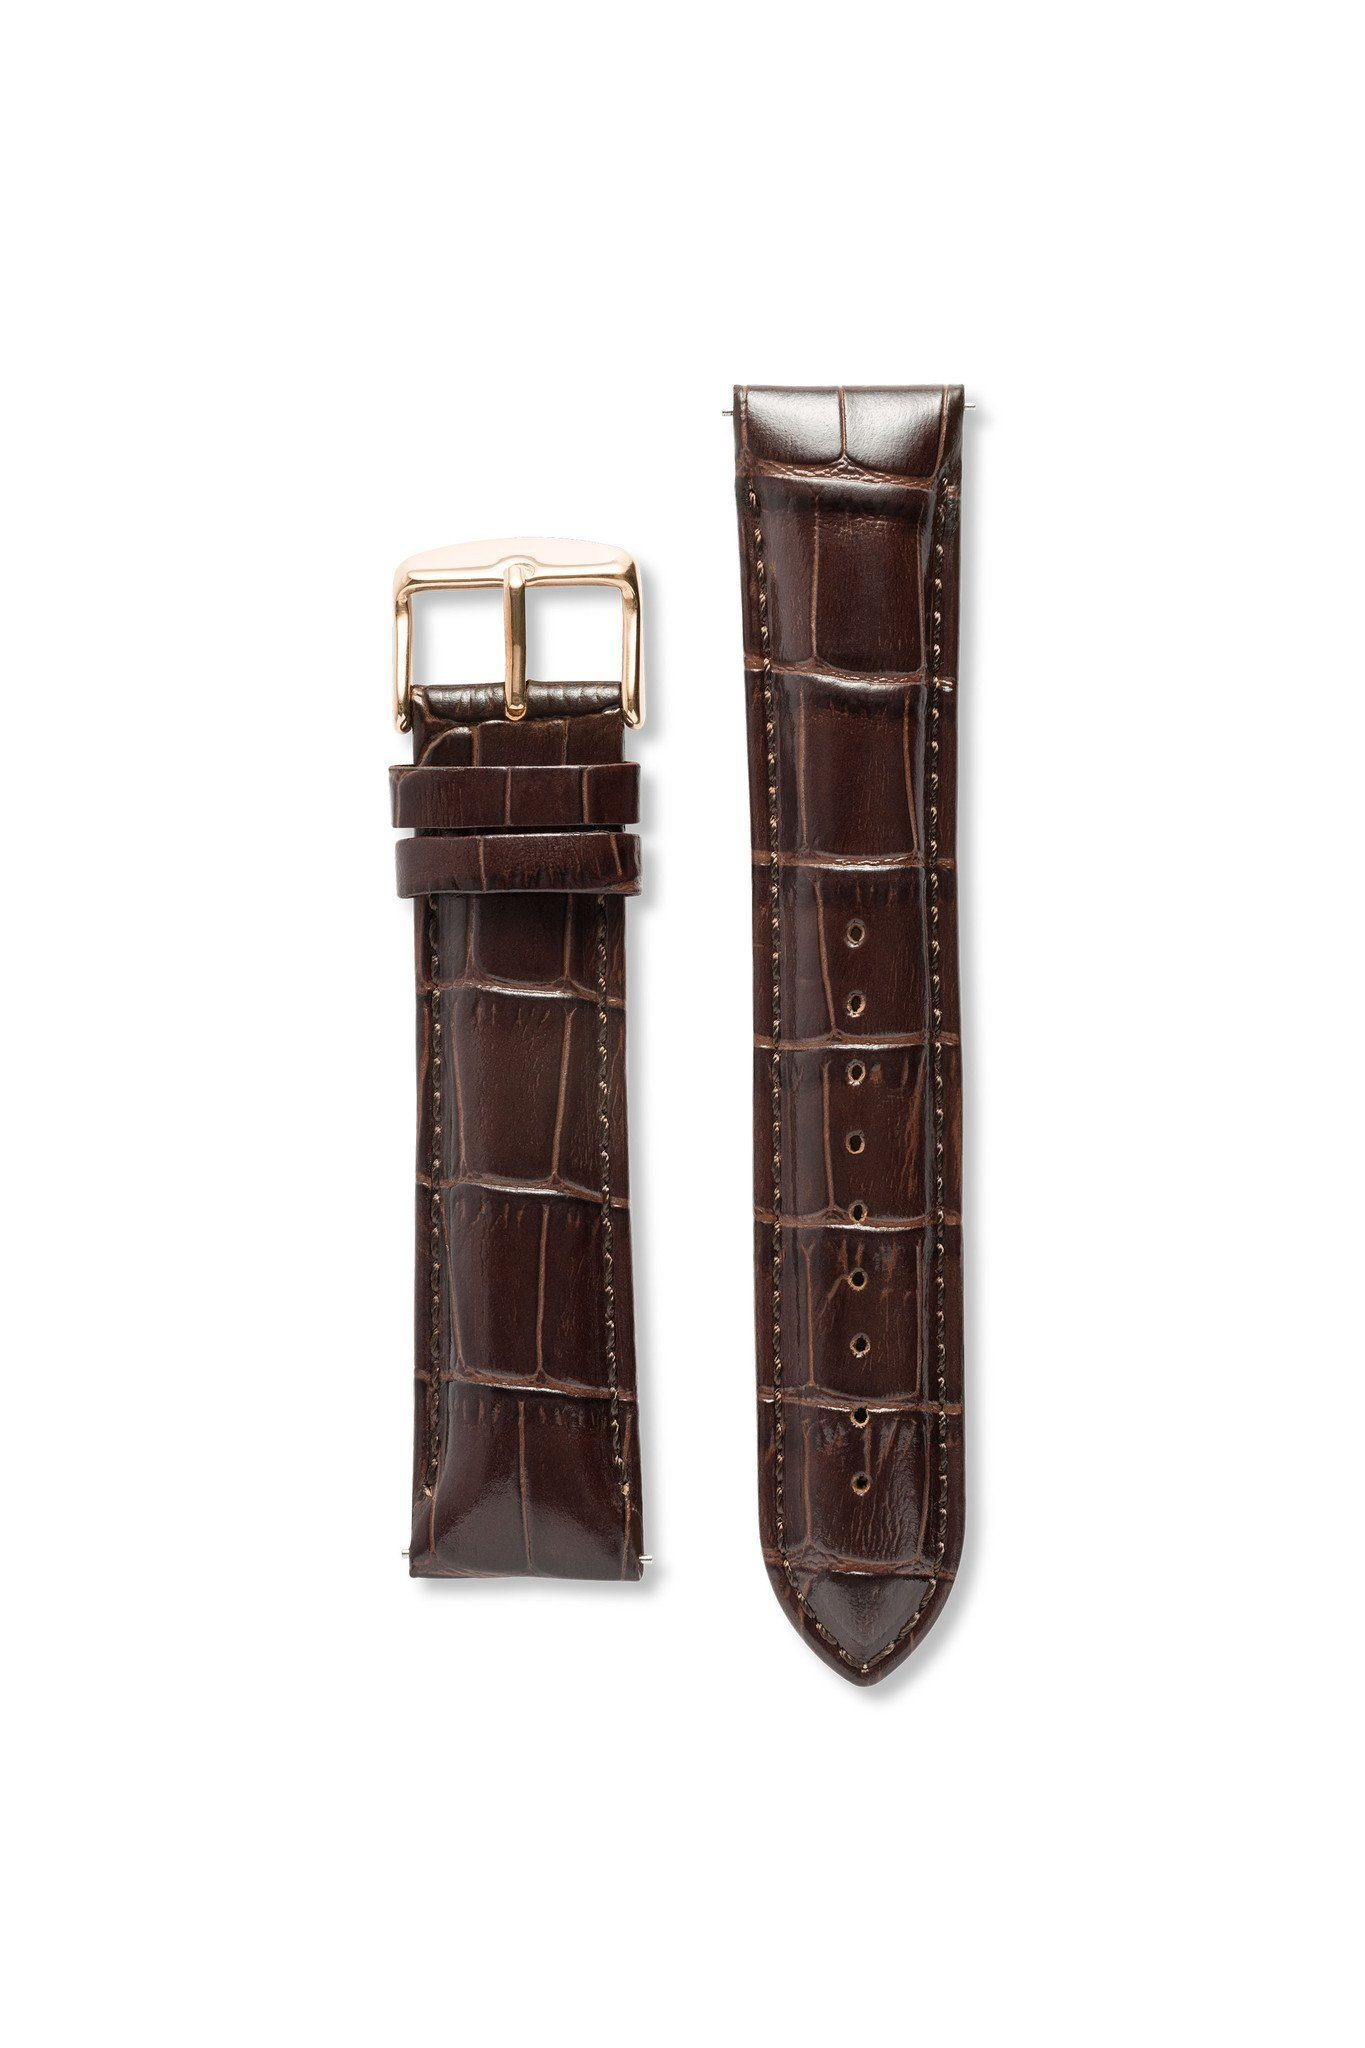 Strap - Wide Crocodile Pattern Leather Brown / Rose Gold Strap